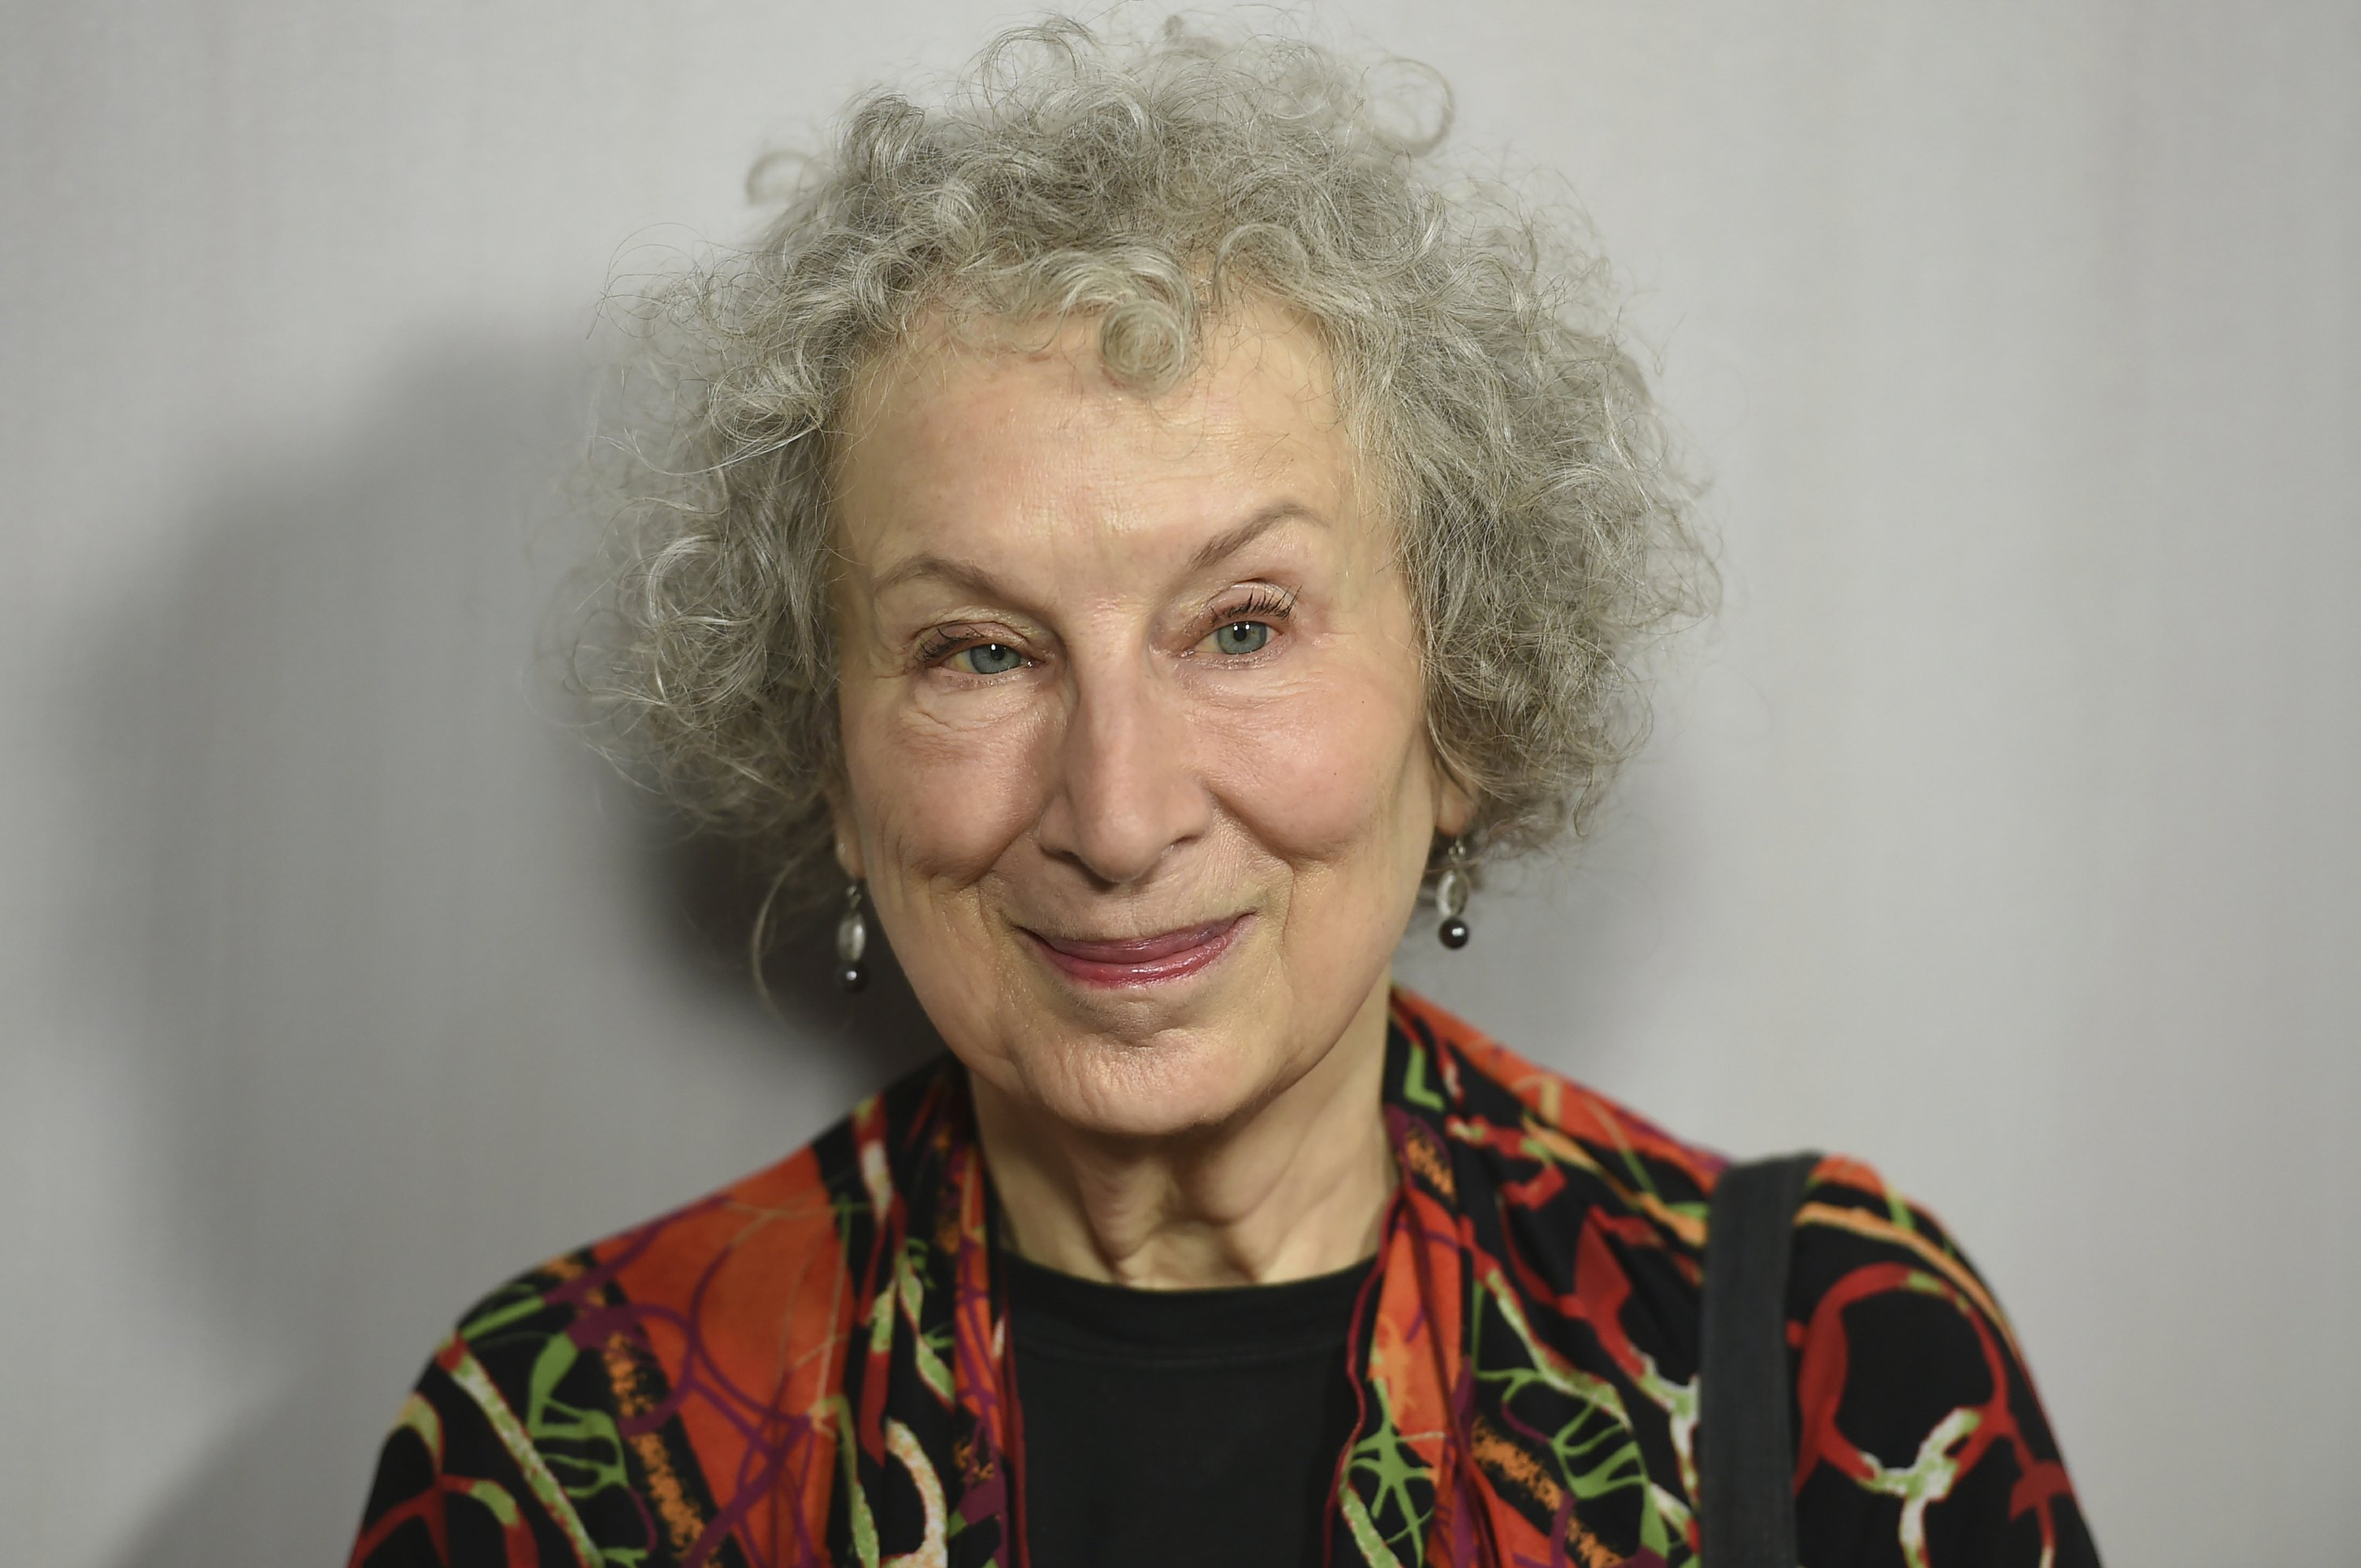 Here We Go: the Biggest Feminist There Is, Handmaid's Tale Author Margaret Atwood, Is Branded Transphobic for Sharing Newspaper Op-ed Rebuking Gender Neutral Language That's Used to Replace the Word 'Woman'